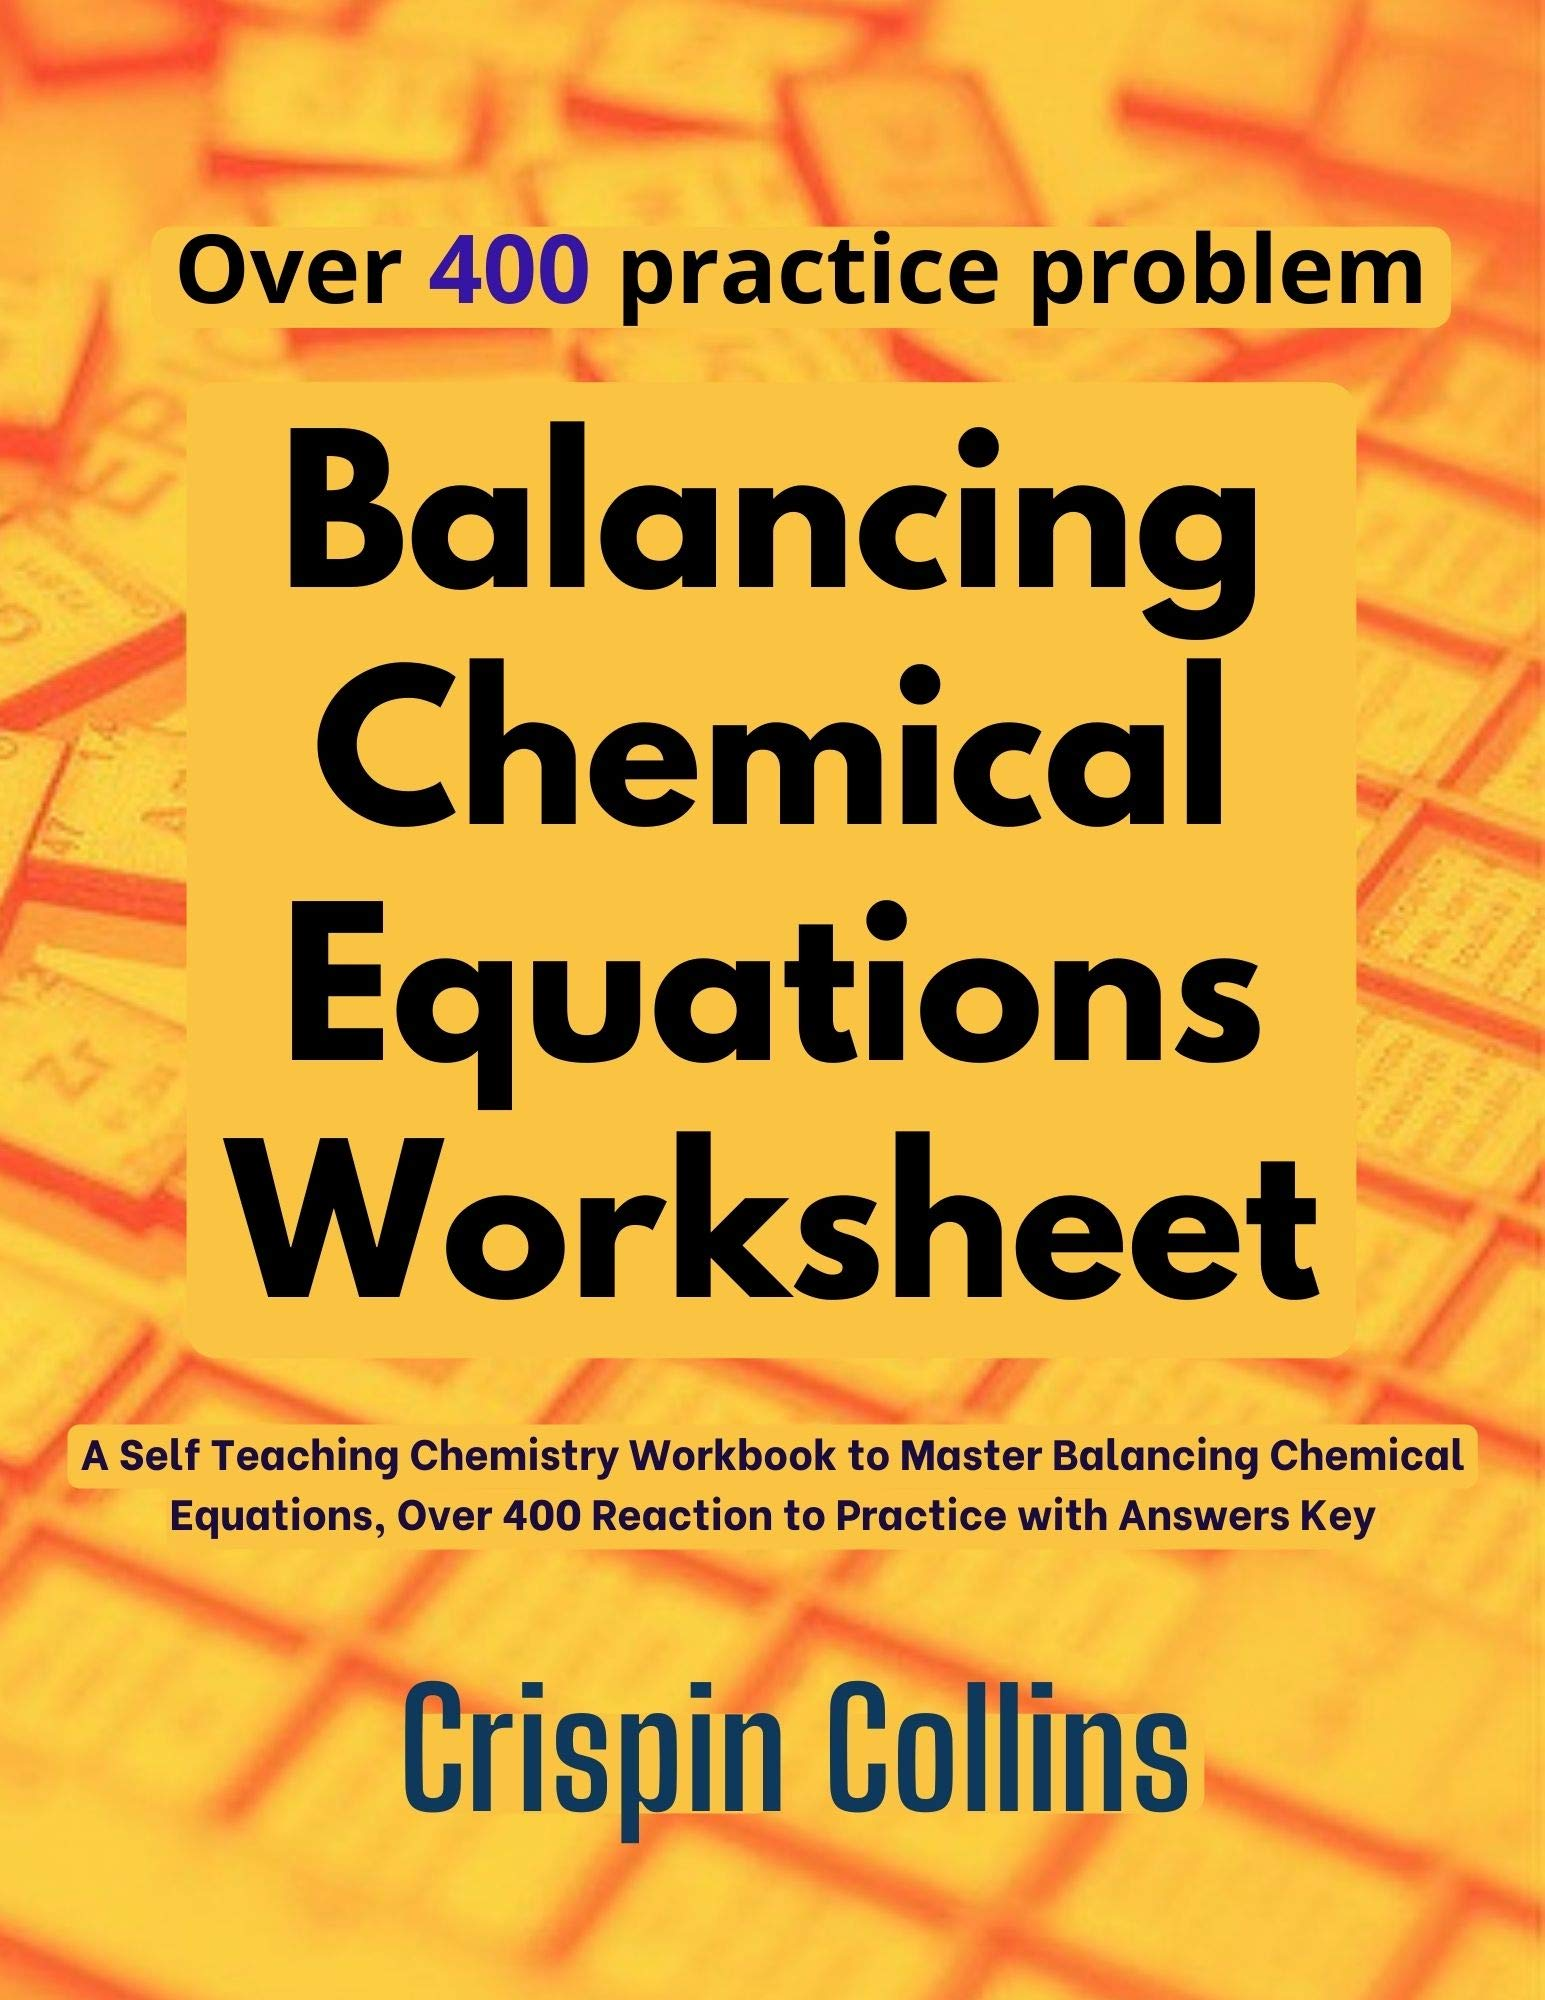 Image OfBalancing Chemical Equations Worksheet: A Self Teaching Chemistry Workbook To Master Balancing Chemical Equations, Over 40...